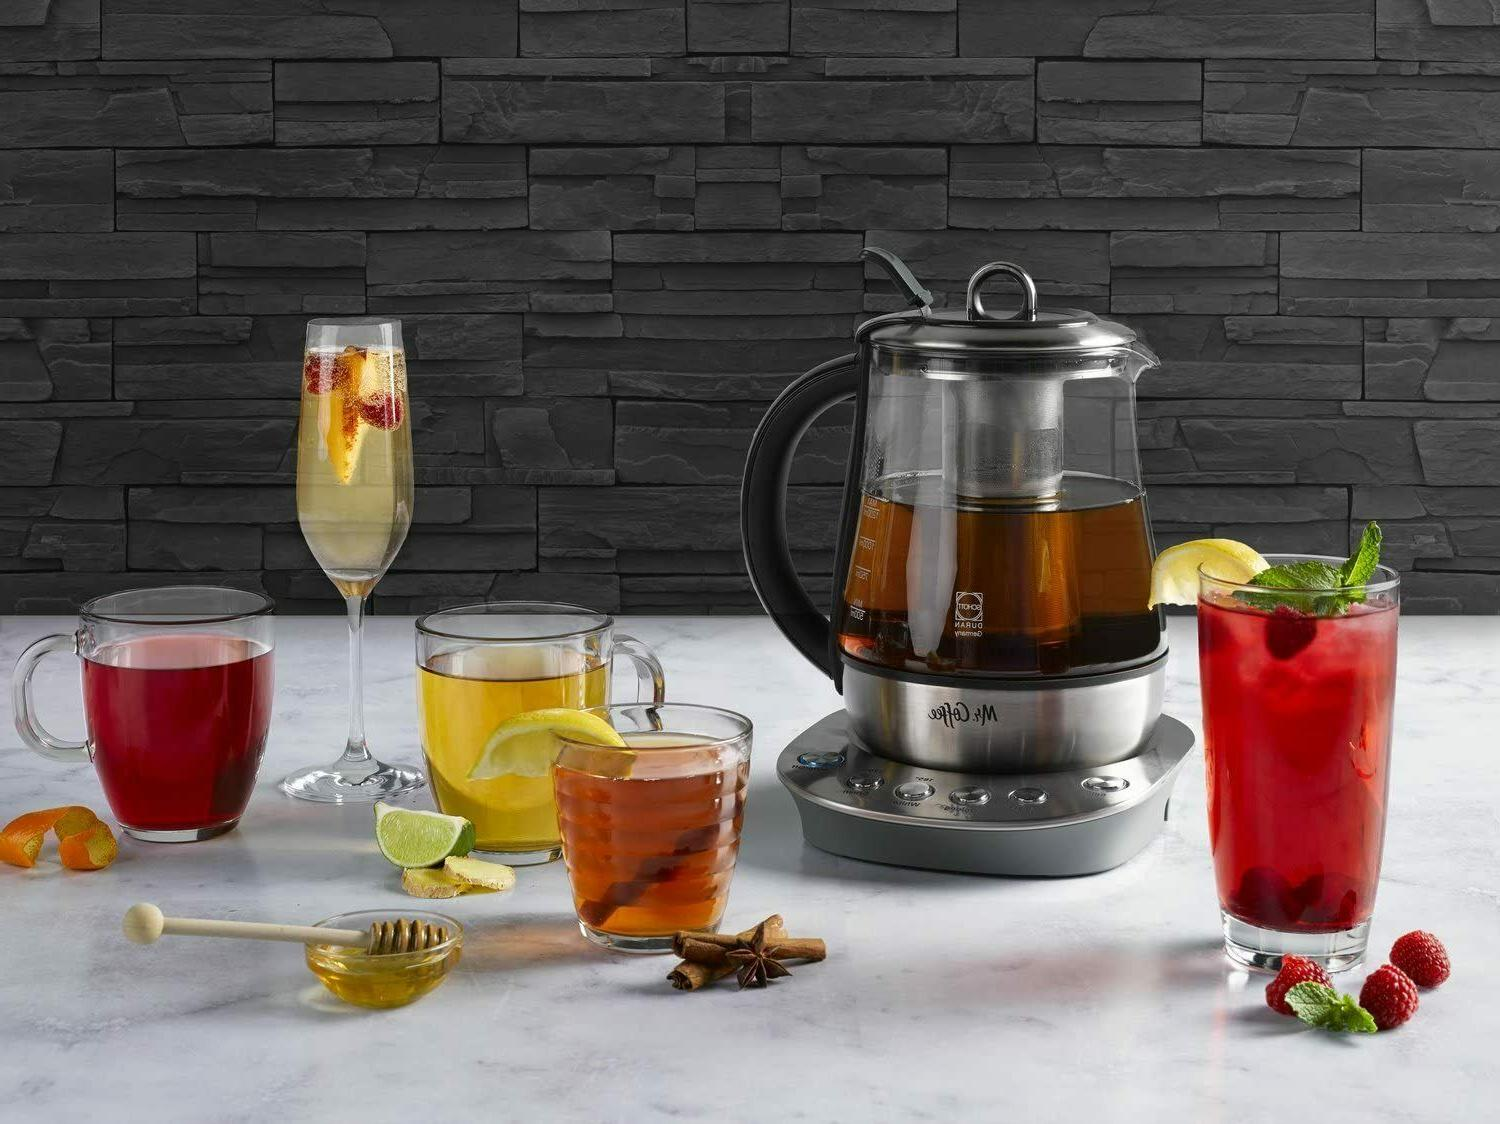 Hot and Kettle, Stainless